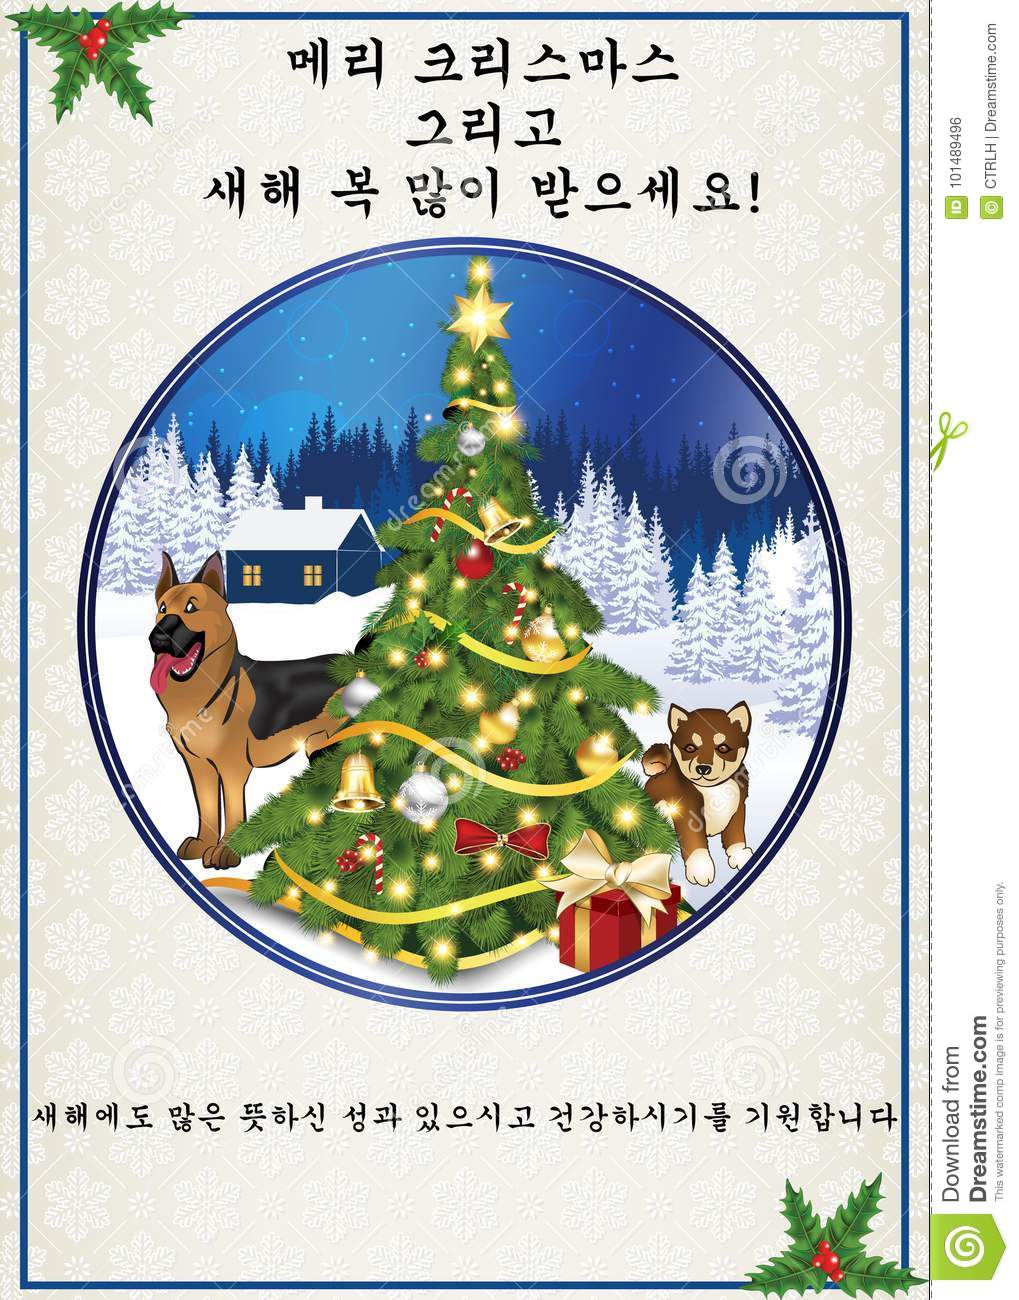 Merry Christmas In Korean.Korean Greeting Card Merry Christmas And Happy New Year